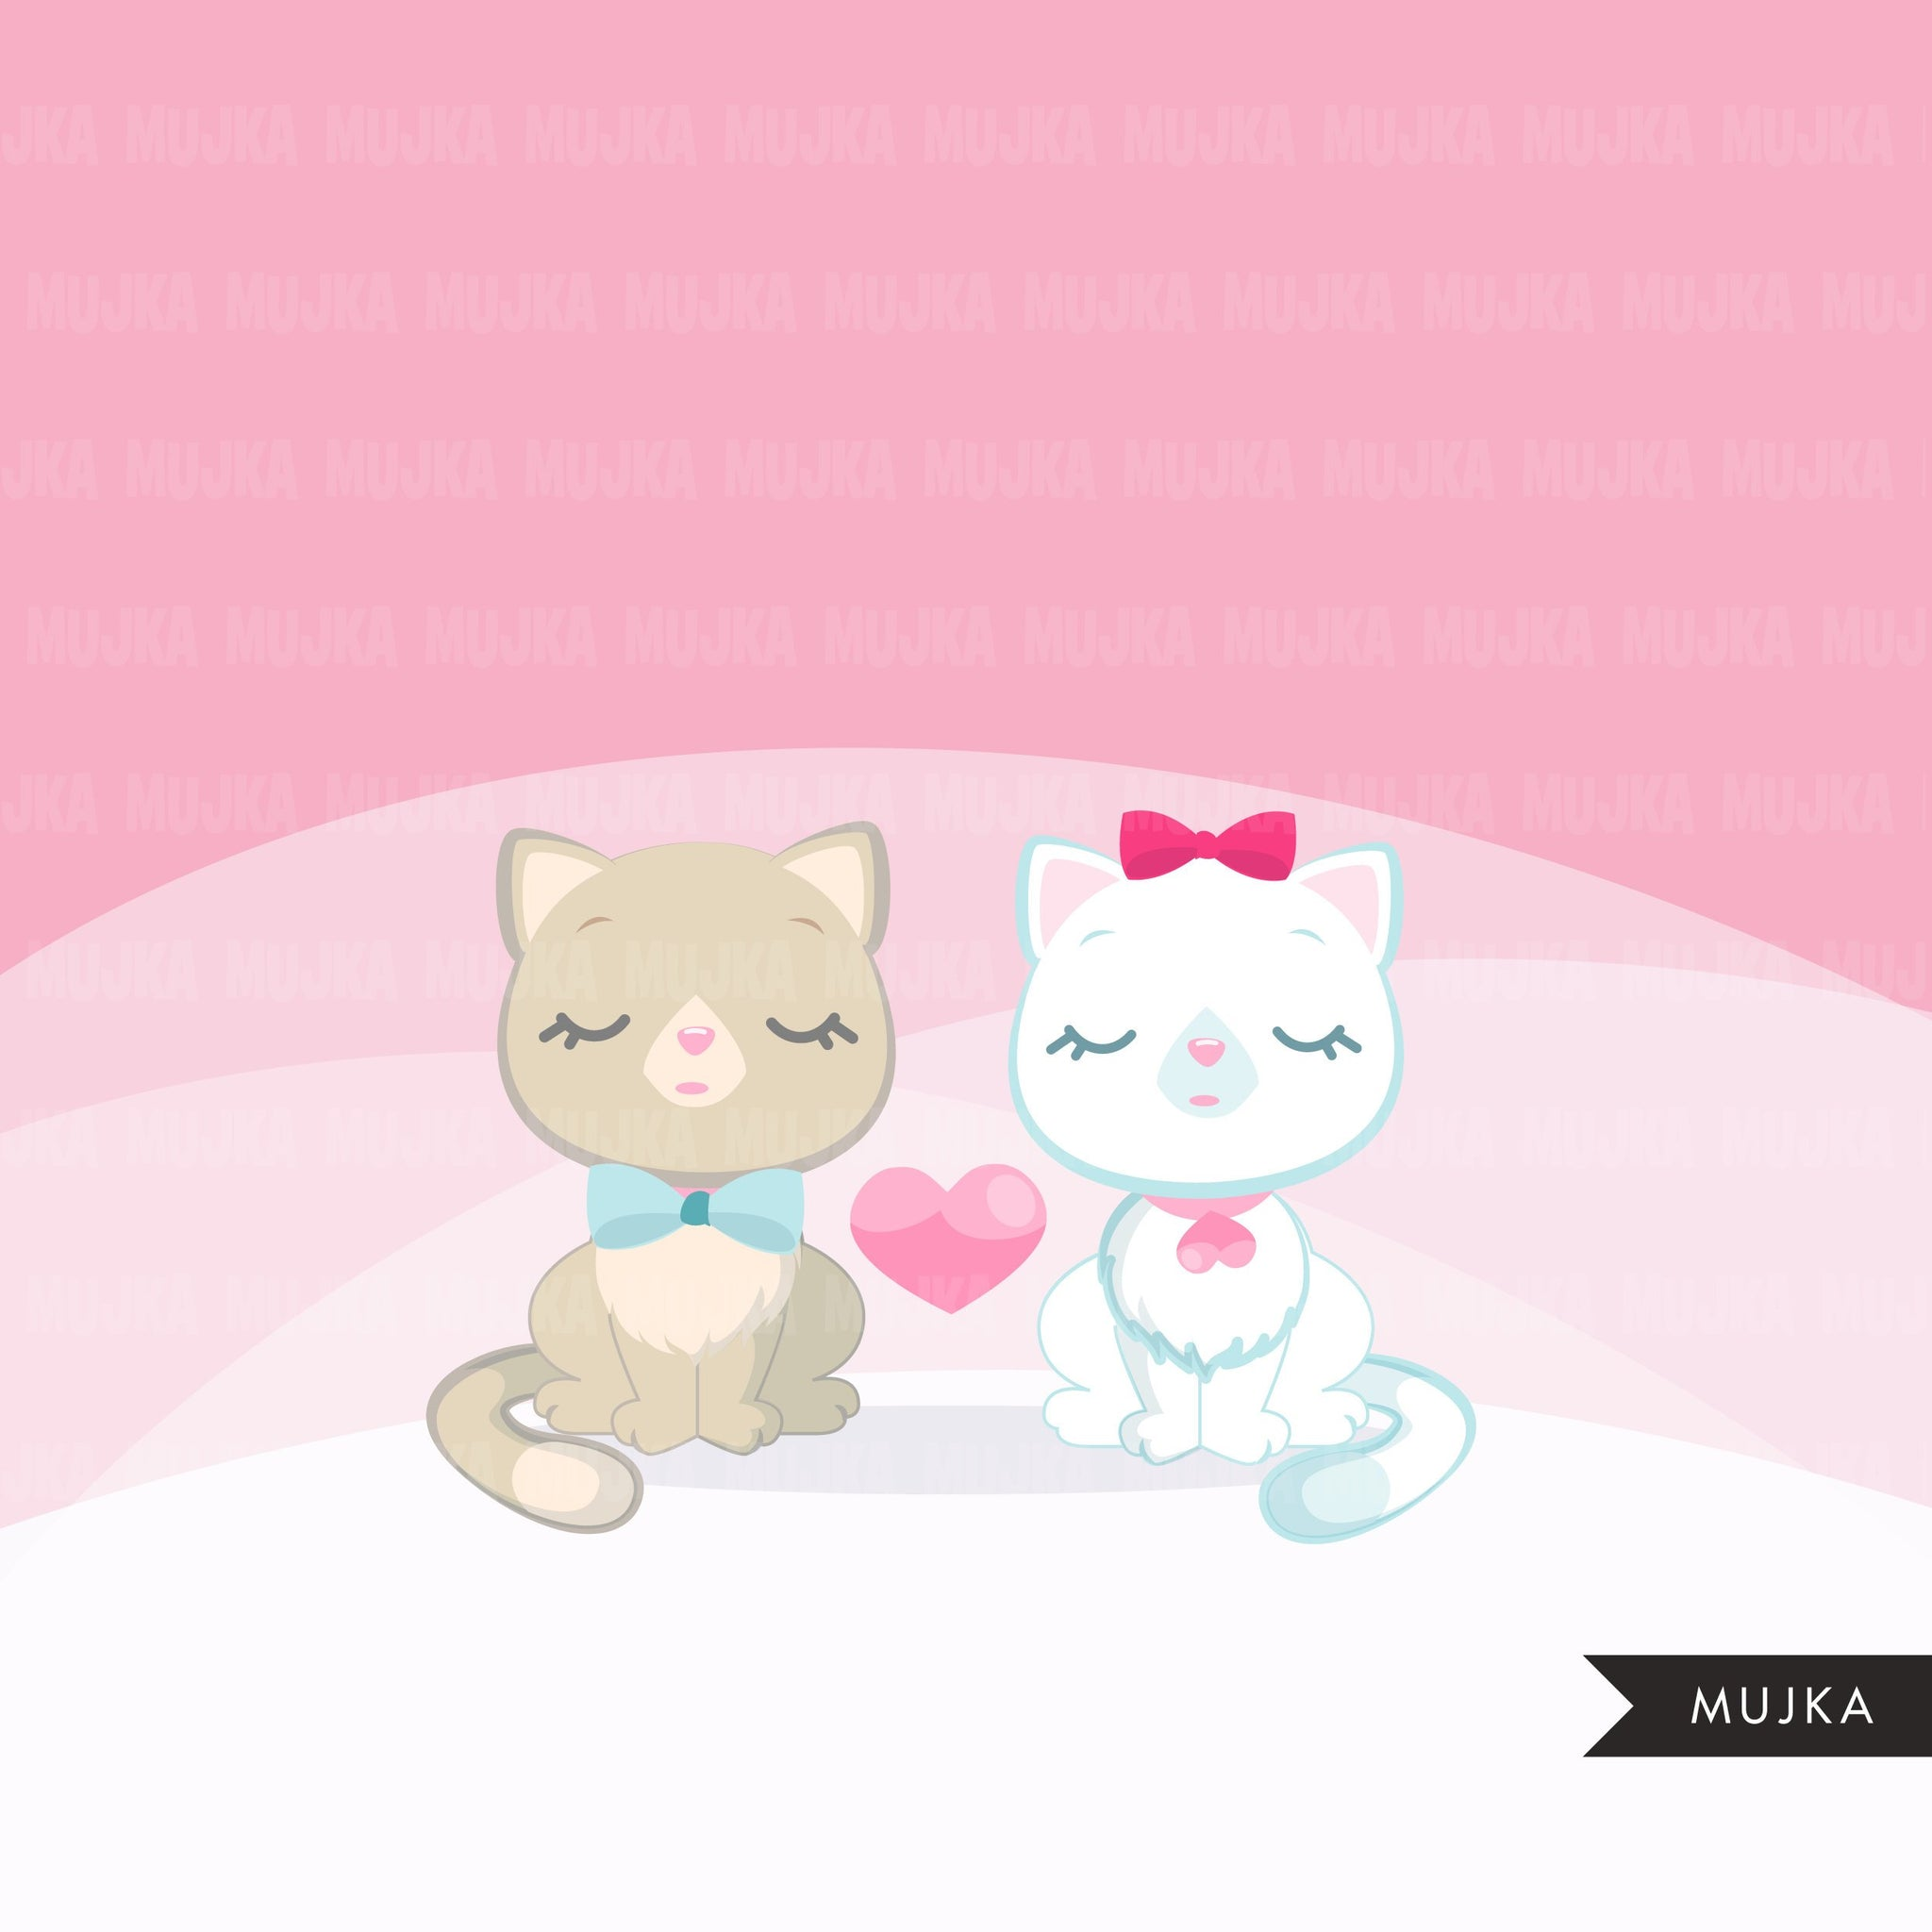 Kitten clipart, animal graphic on valentine's day